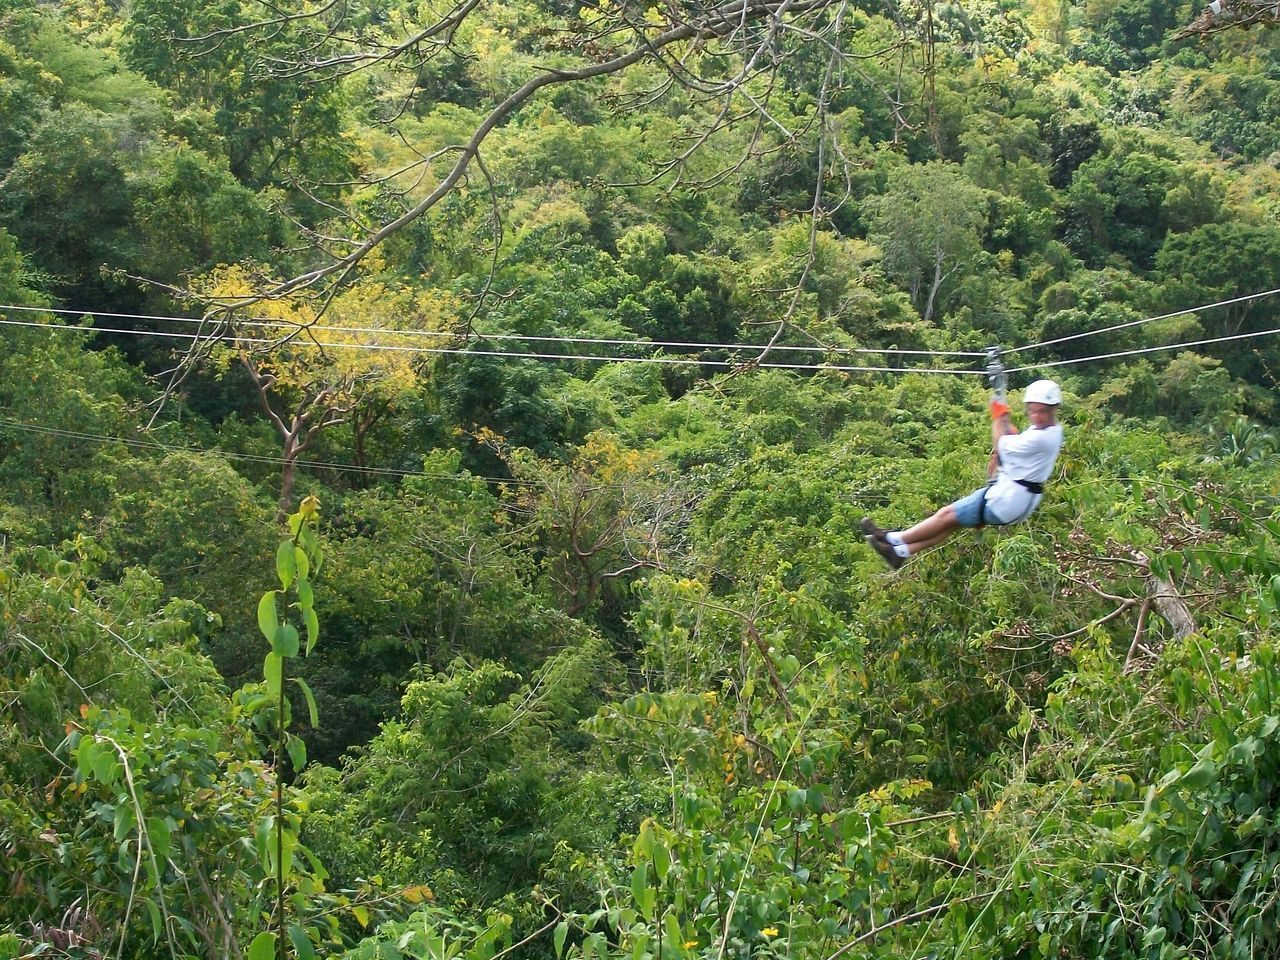 Beautiful stock photos of rainforest, Adventure, Carefree, Day, Enjoyment